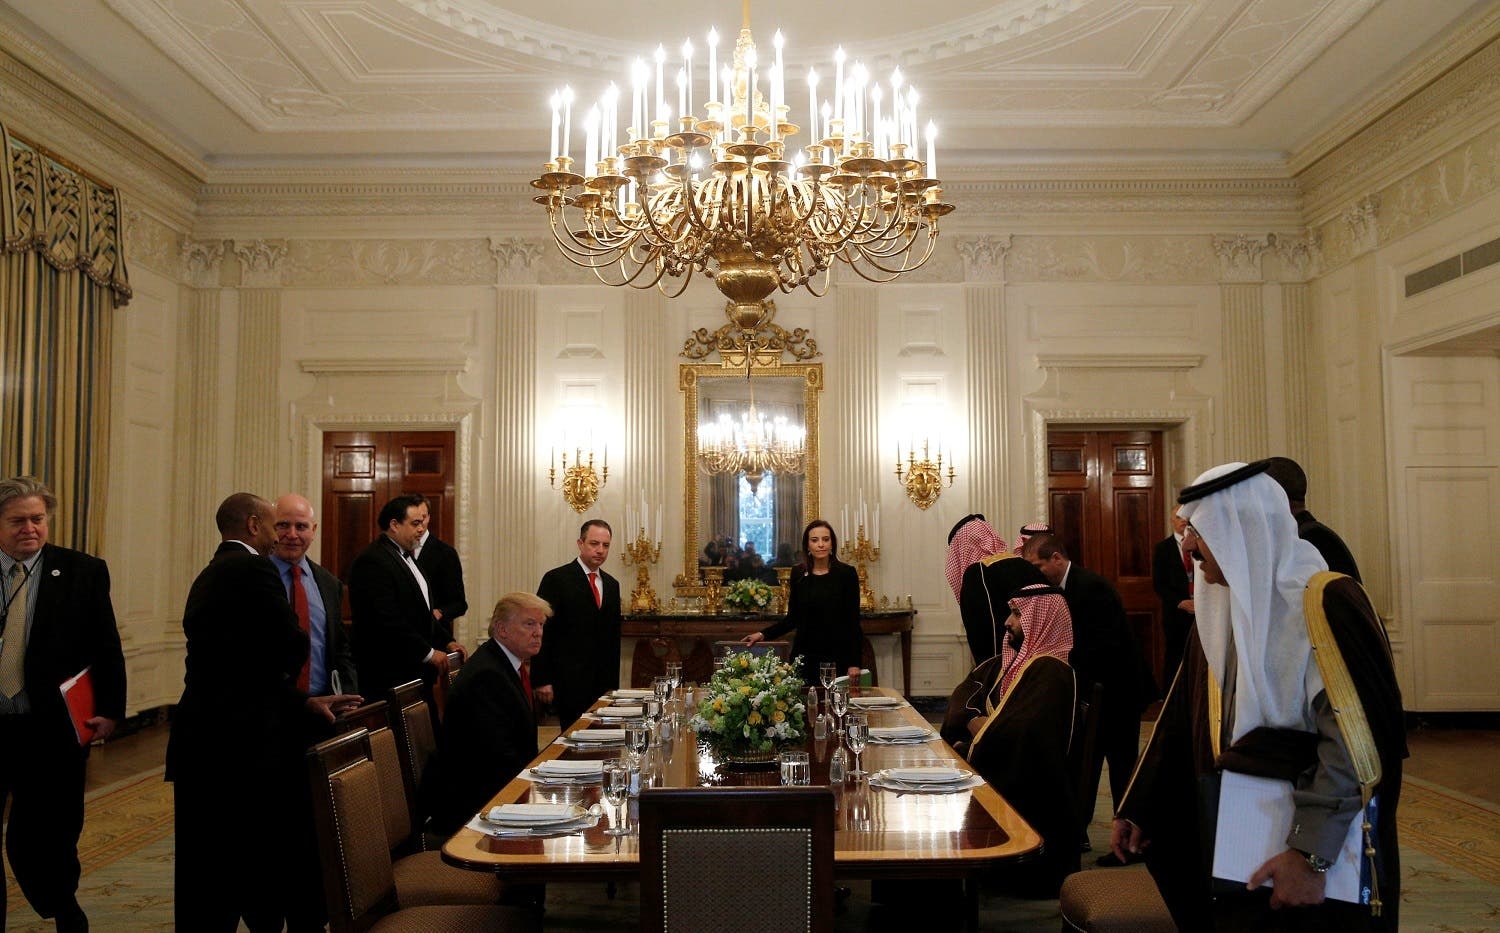 Donald Trump and Saudi Deputy Crown Prince Mohammed bin Salman take their seats for lunch in the State Dining Room of the White House in Washington, US, March 14, 2017. (Reuters)